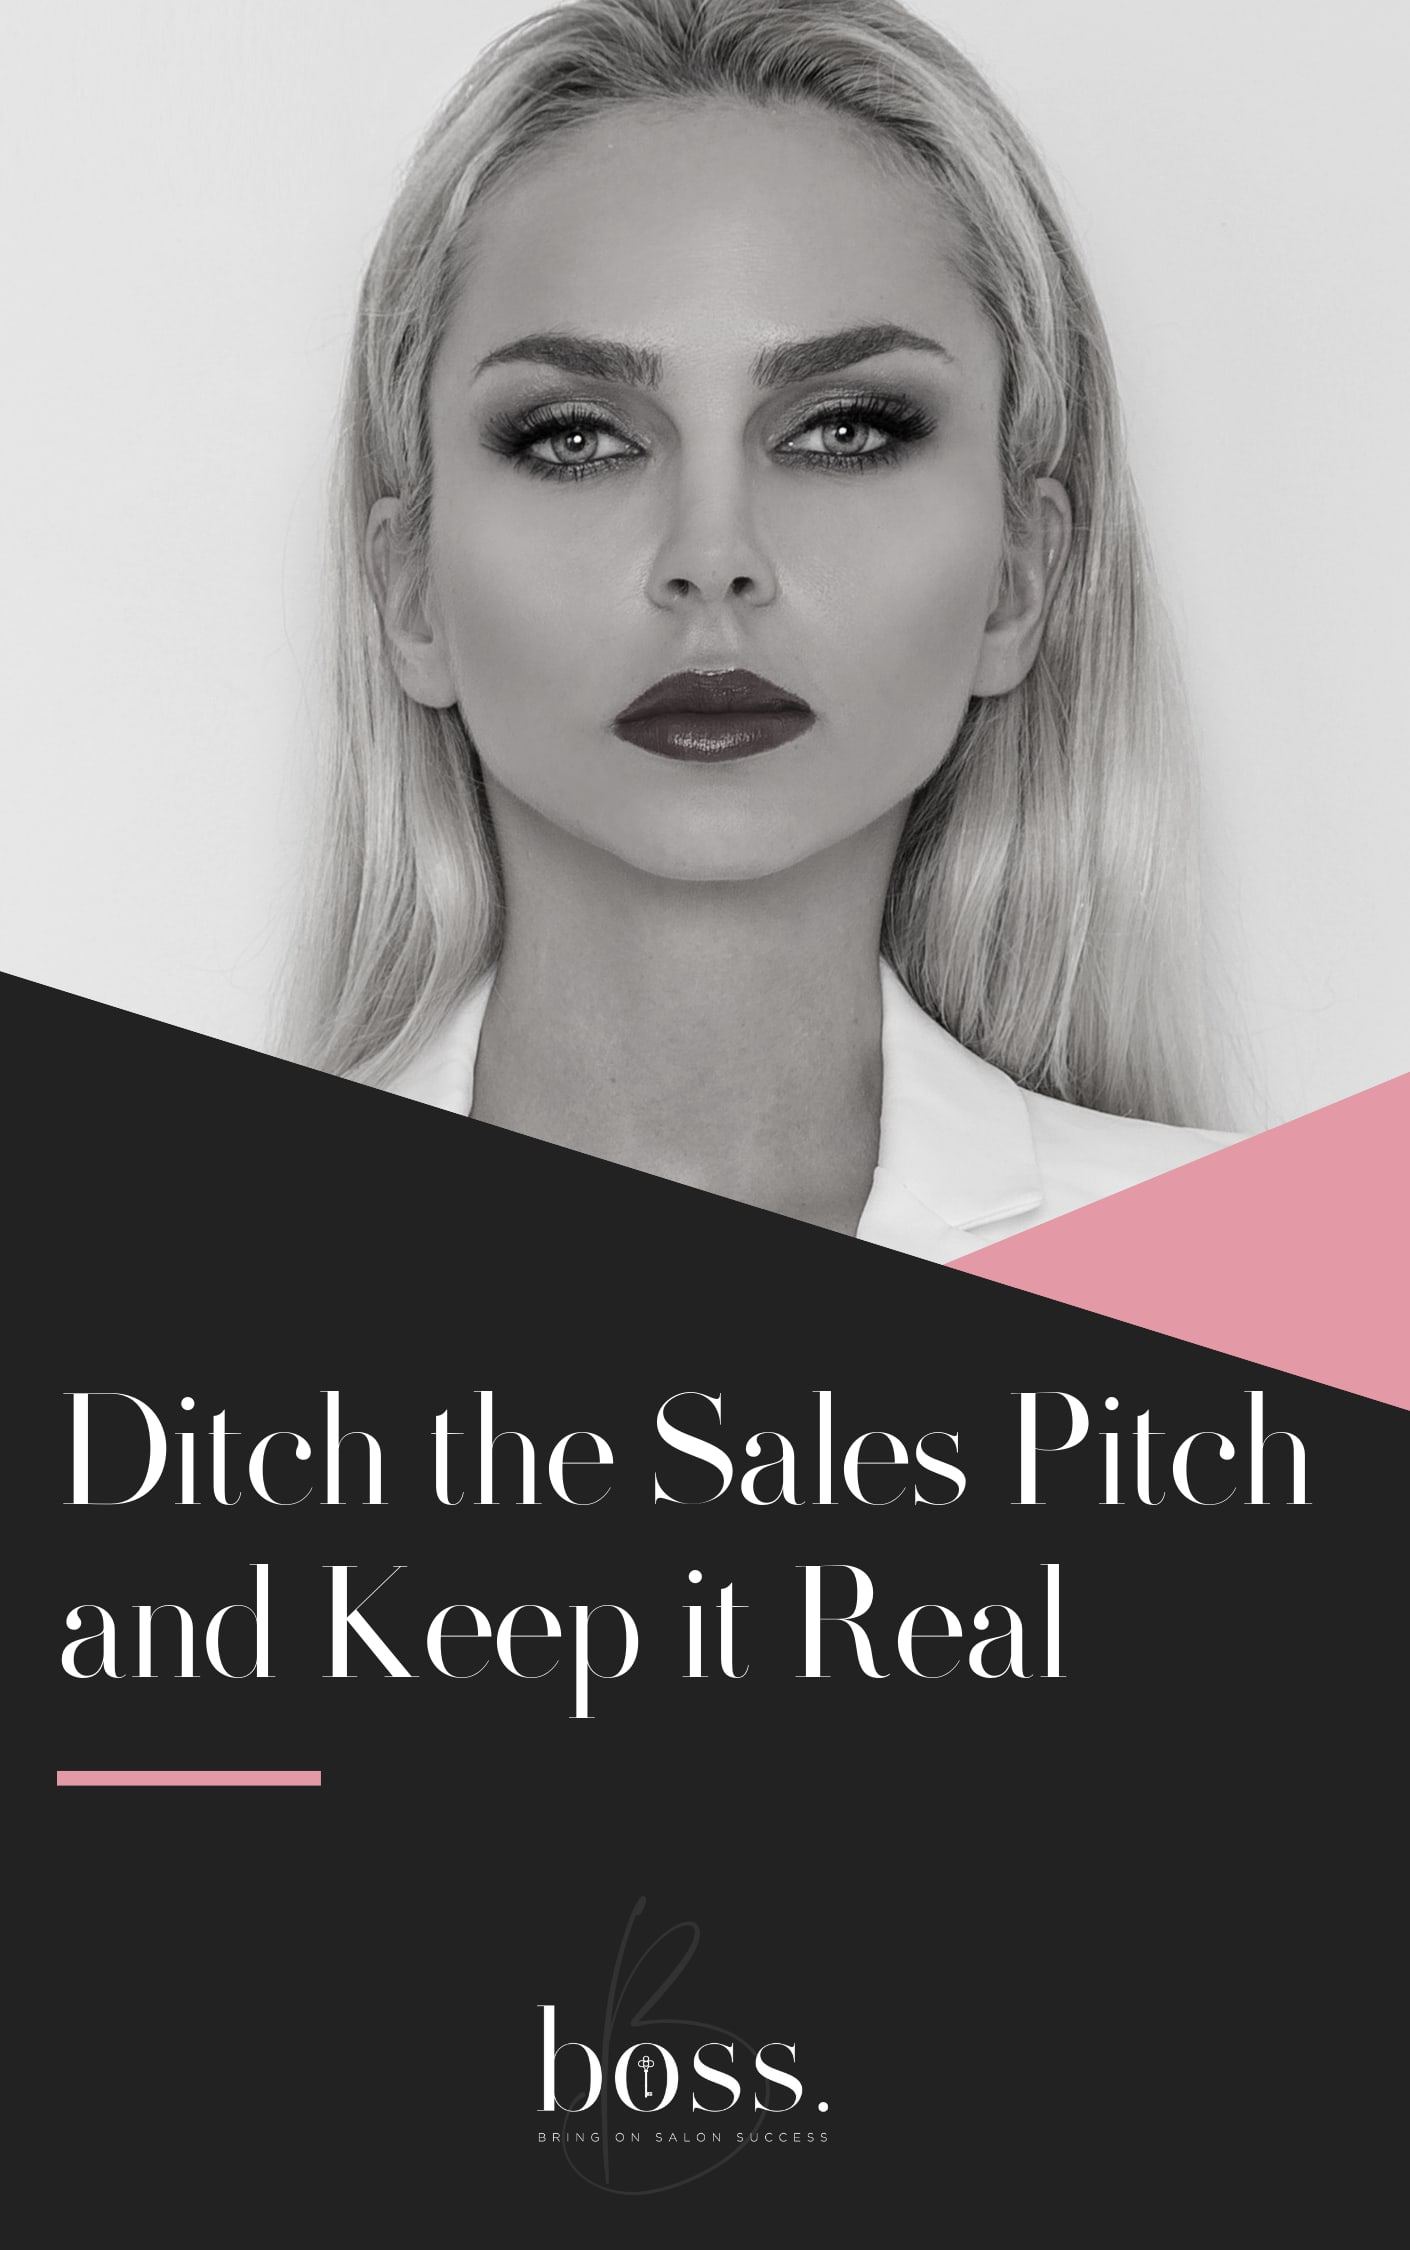 Sell the Secret - Ditch the Sales Pitch and Keep it Real